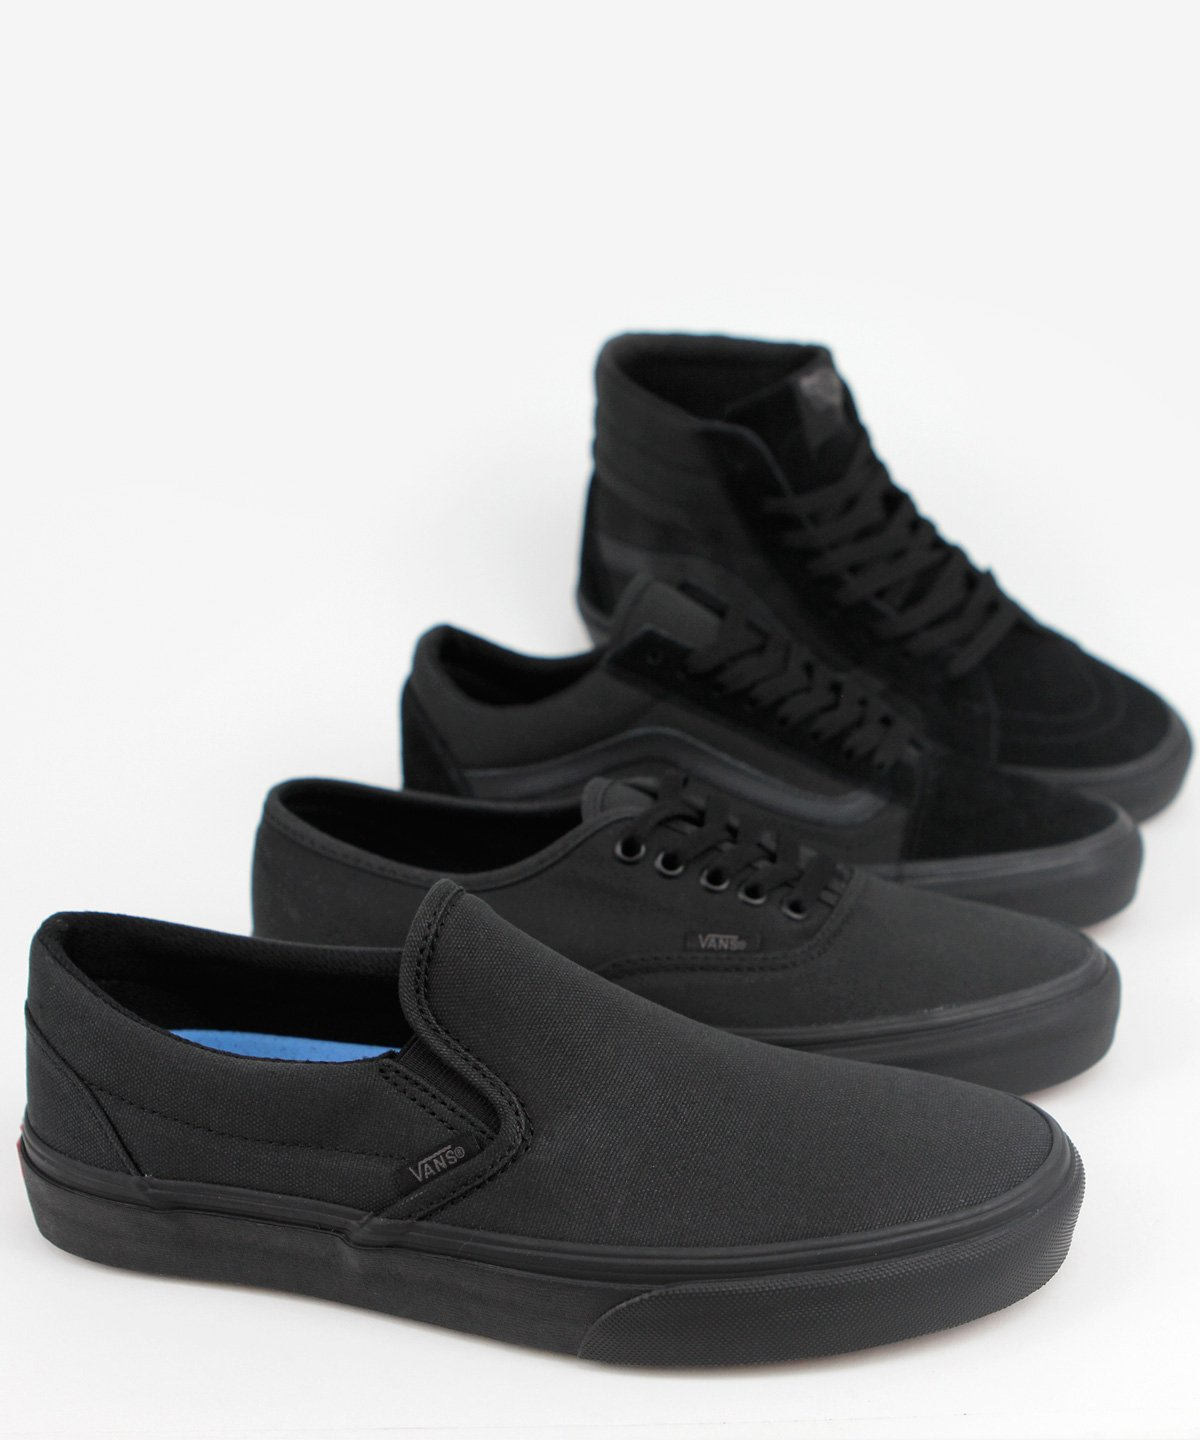 vans made for the makers non slip